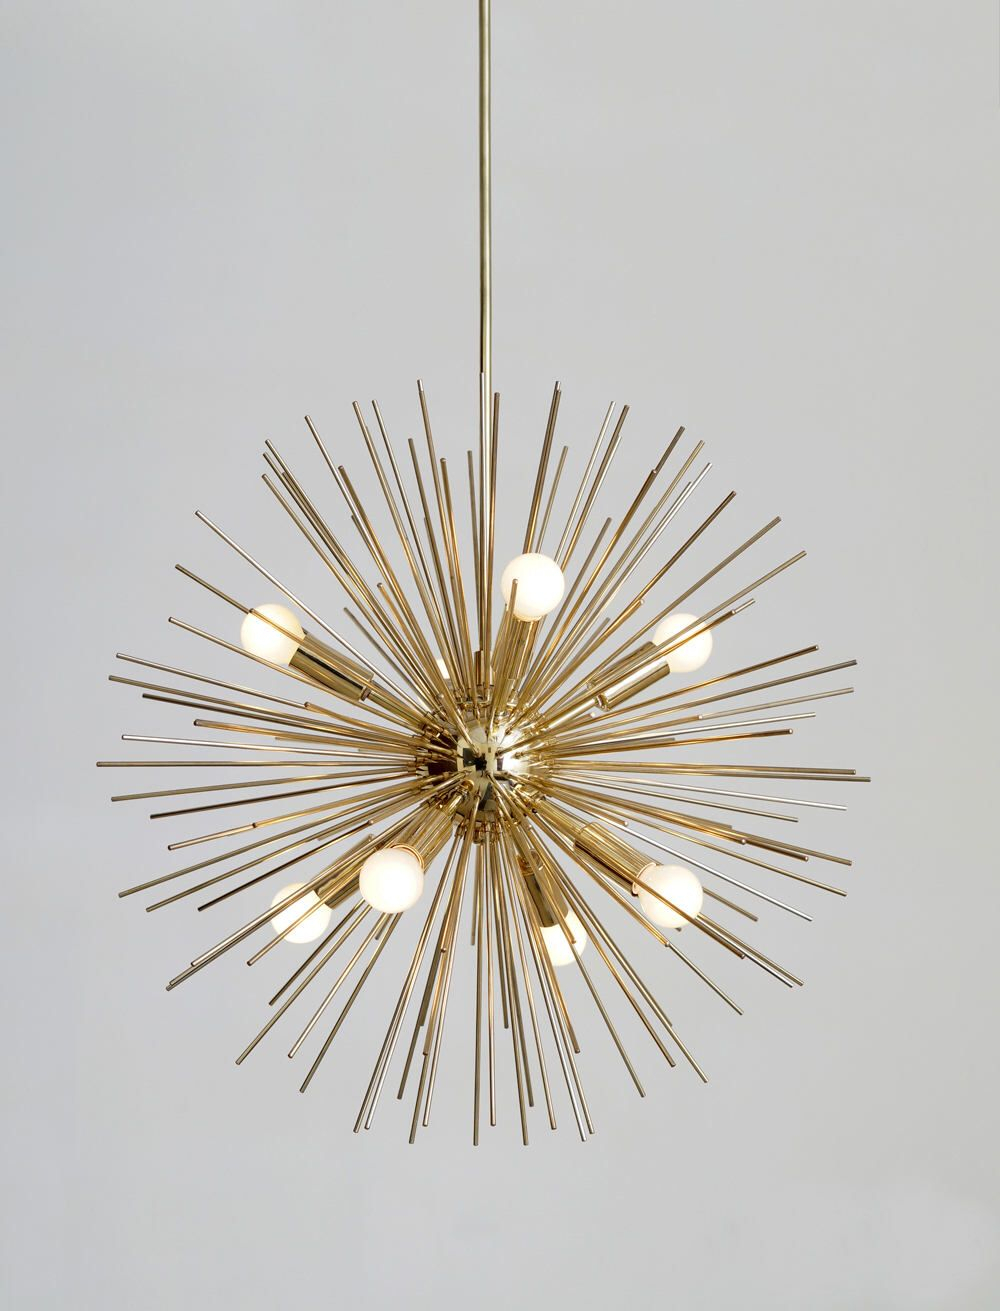 Pinsoul Your Homepatricia N. On ☆ Lighting ☆ In regarding Asher 12-Light Sputnik Chandeliers (Image 27 of 30)